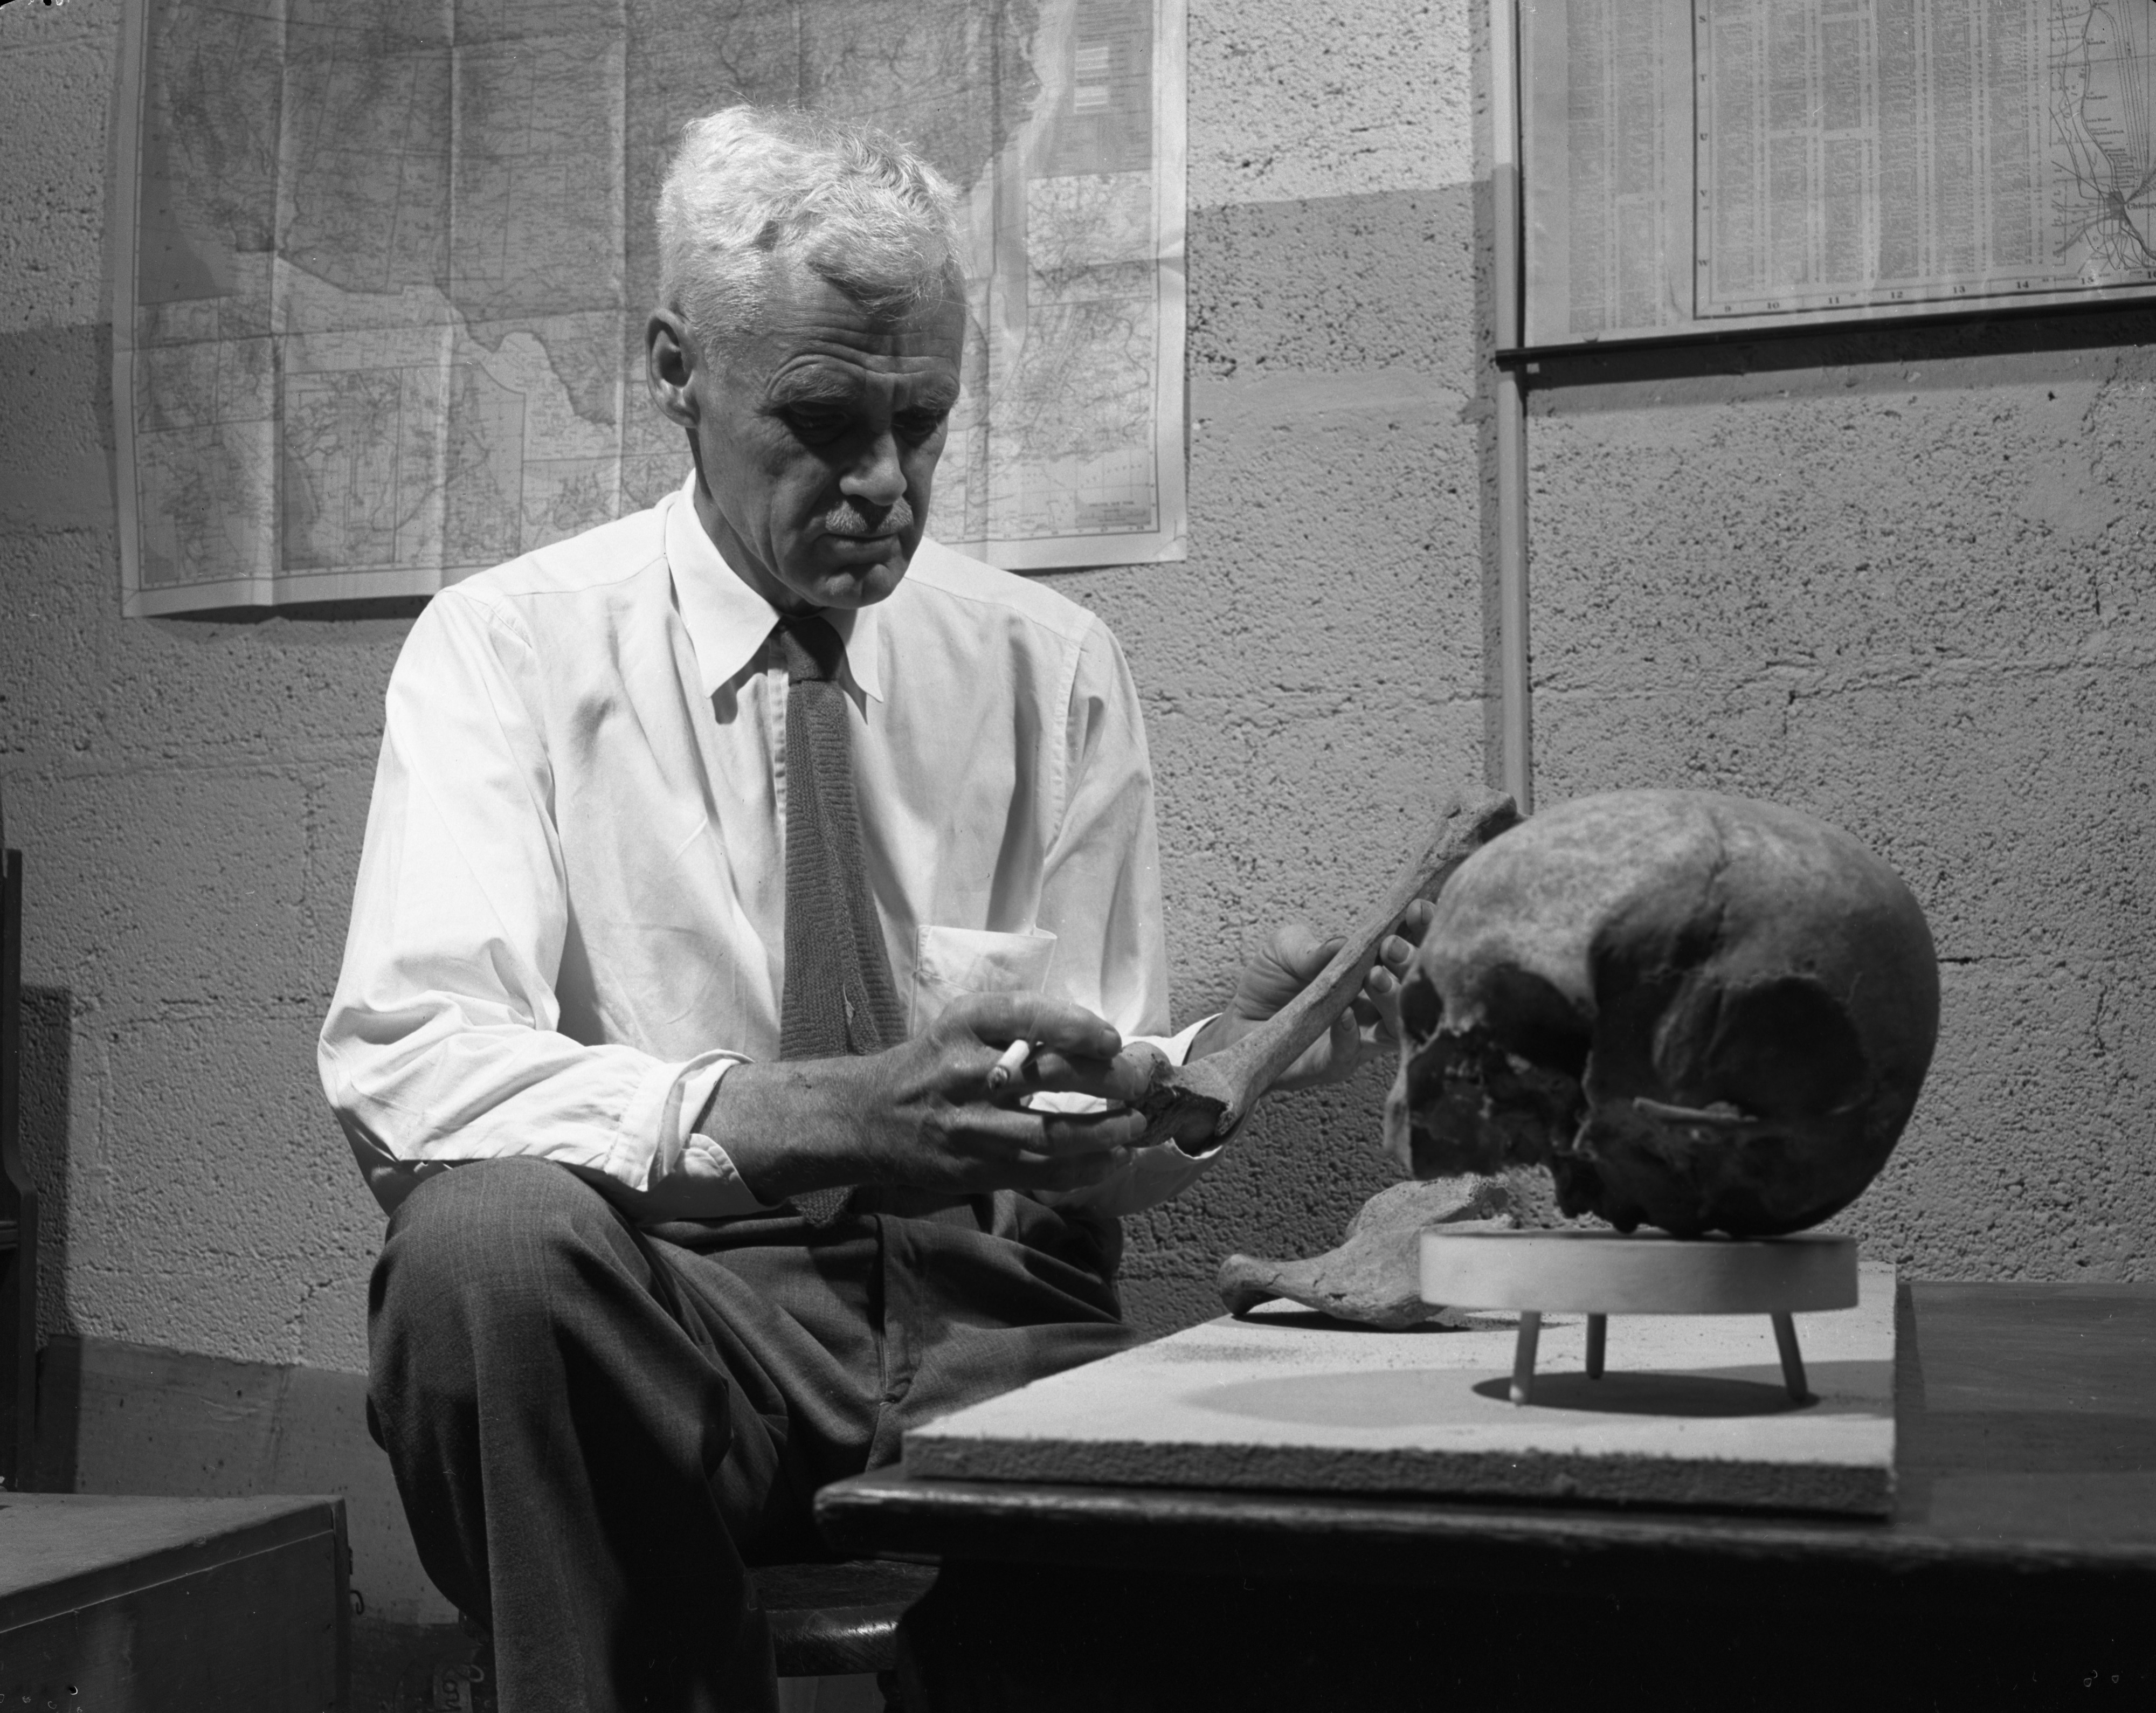 Dr. Emerson F. Greenman with remains of early American Indians found on Ellsworth Rd., September 1952 image